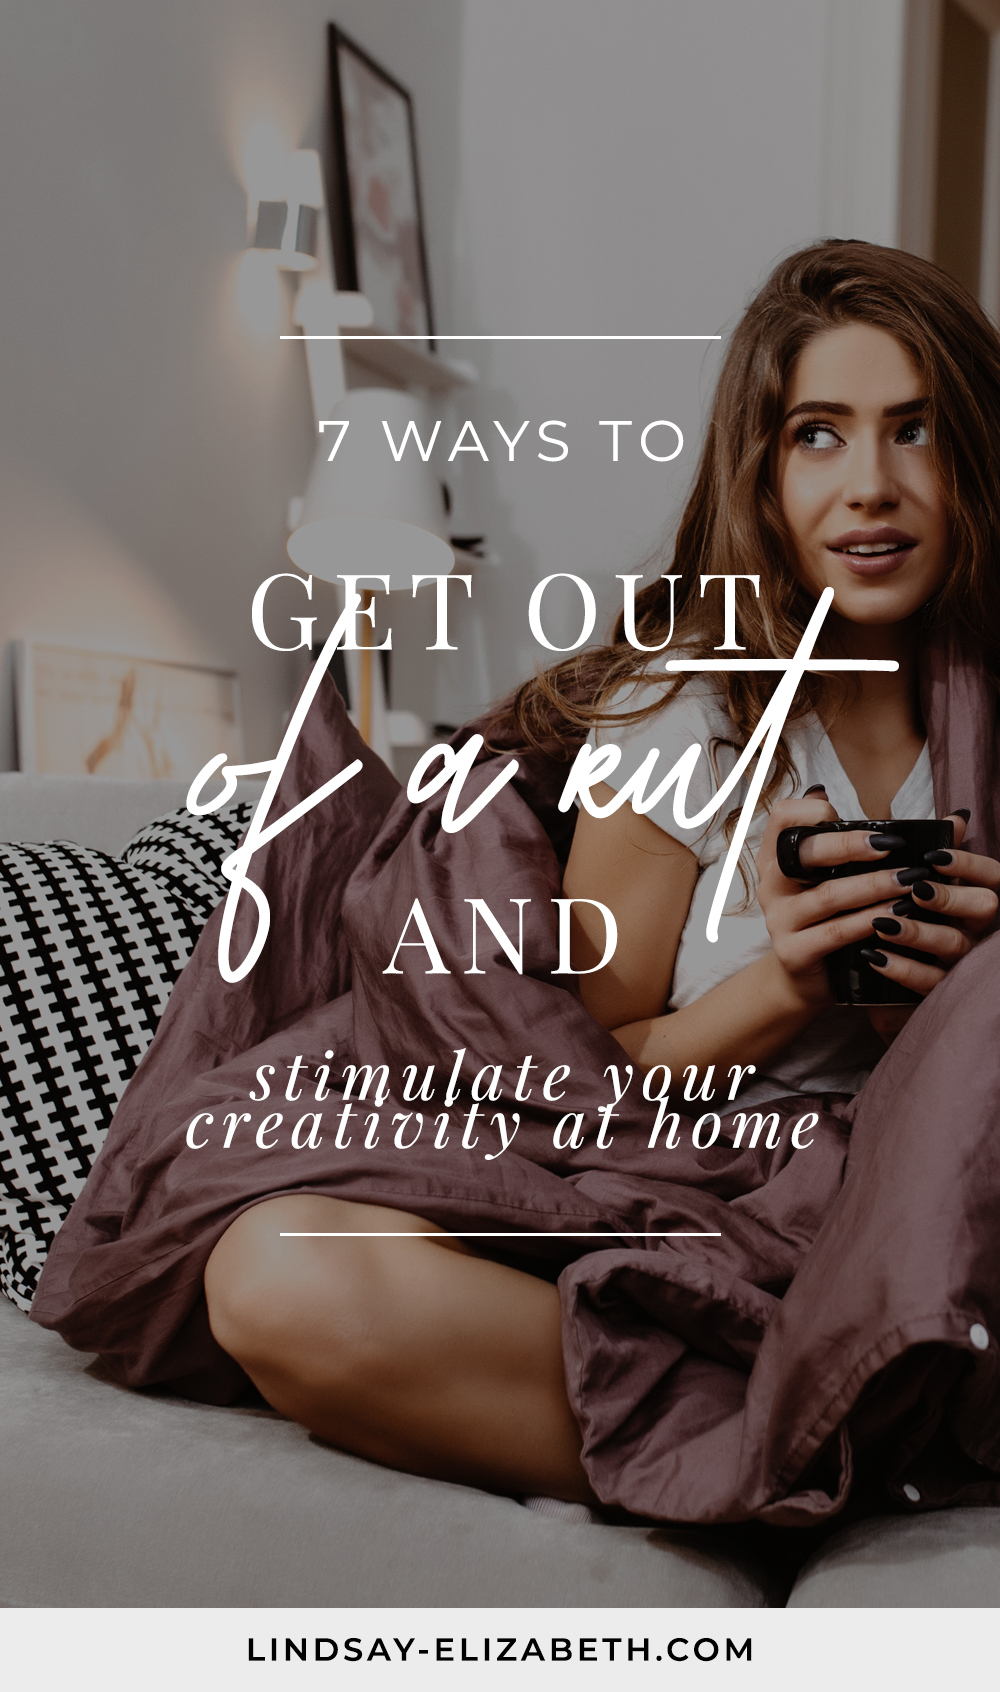 Have you been feeling drained and uninspired? You aren't alone — getting stuck in a rut can happen to anyone, especially right now. But there are always opportunities to get your creative juices flowing and make you feel alive again ─ and you don't even have to leave your home to do them. Here are some easy ideas on how to get out of a rut and stimulate your creativity at home. #creativeblocks #selfcare #lackingmotivation #stuckinarut #selfhelp